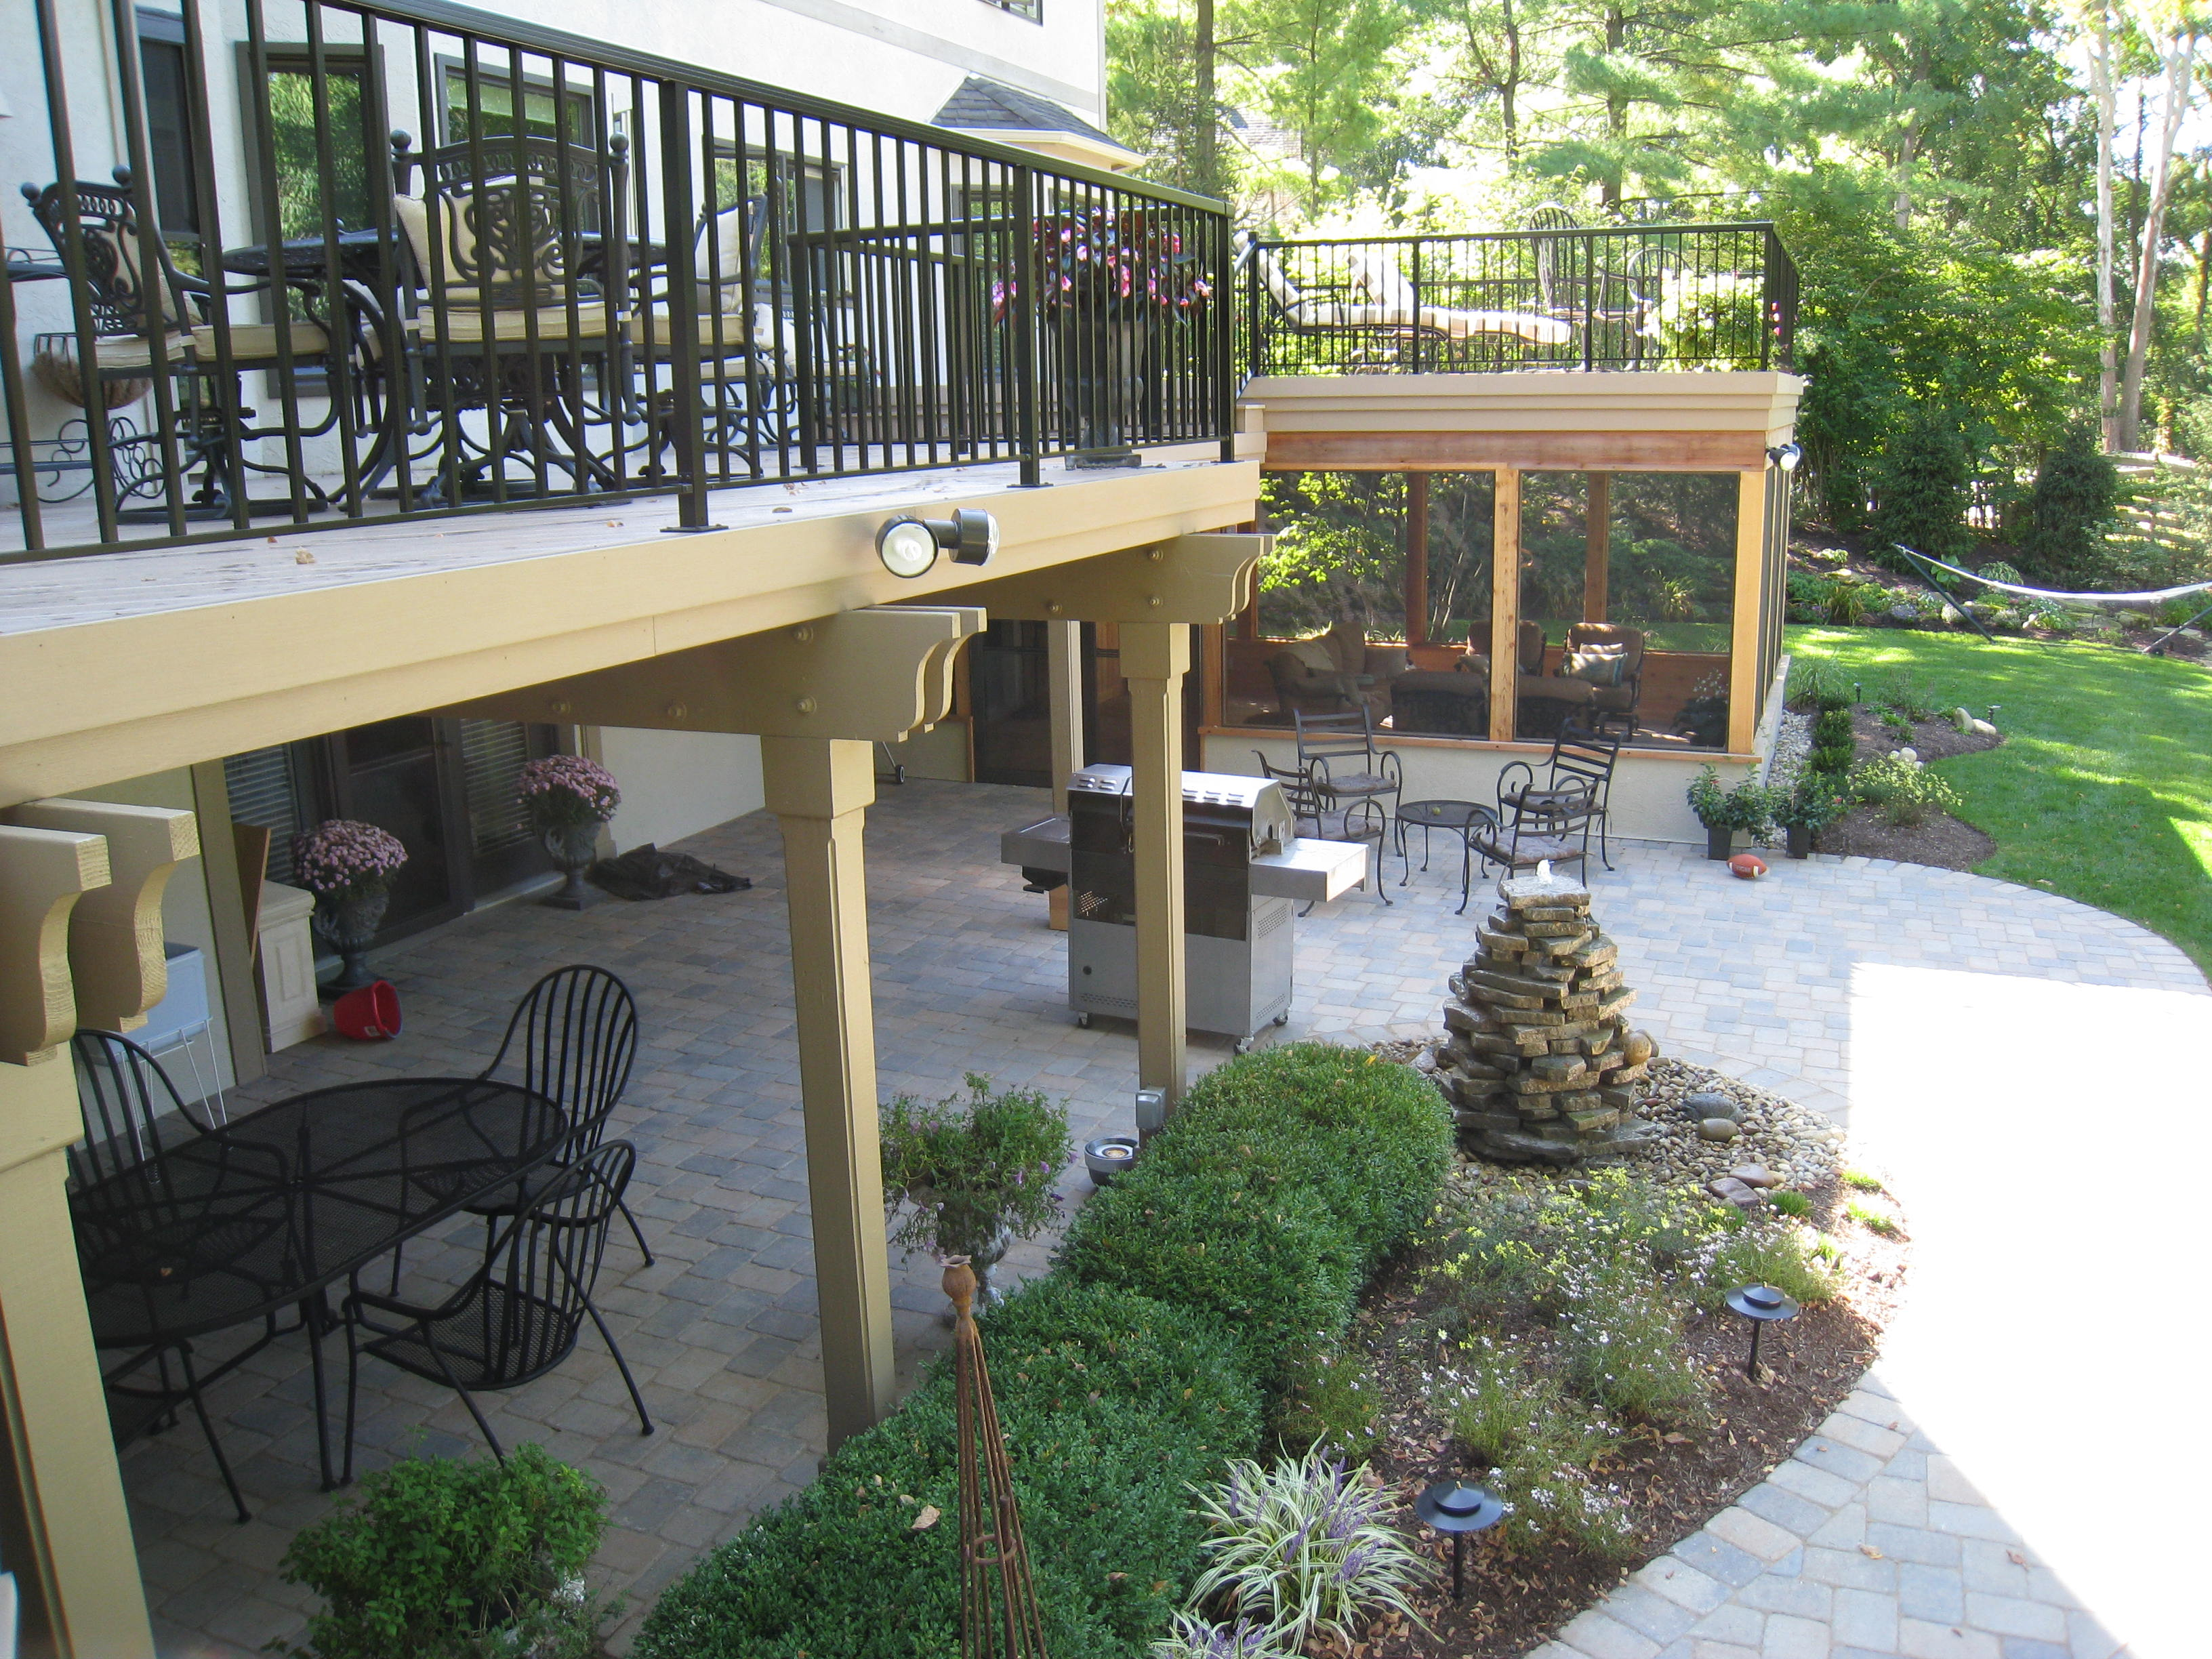 Plan Your Dream Backyard Now – Built It In Phases | Archadeck ...